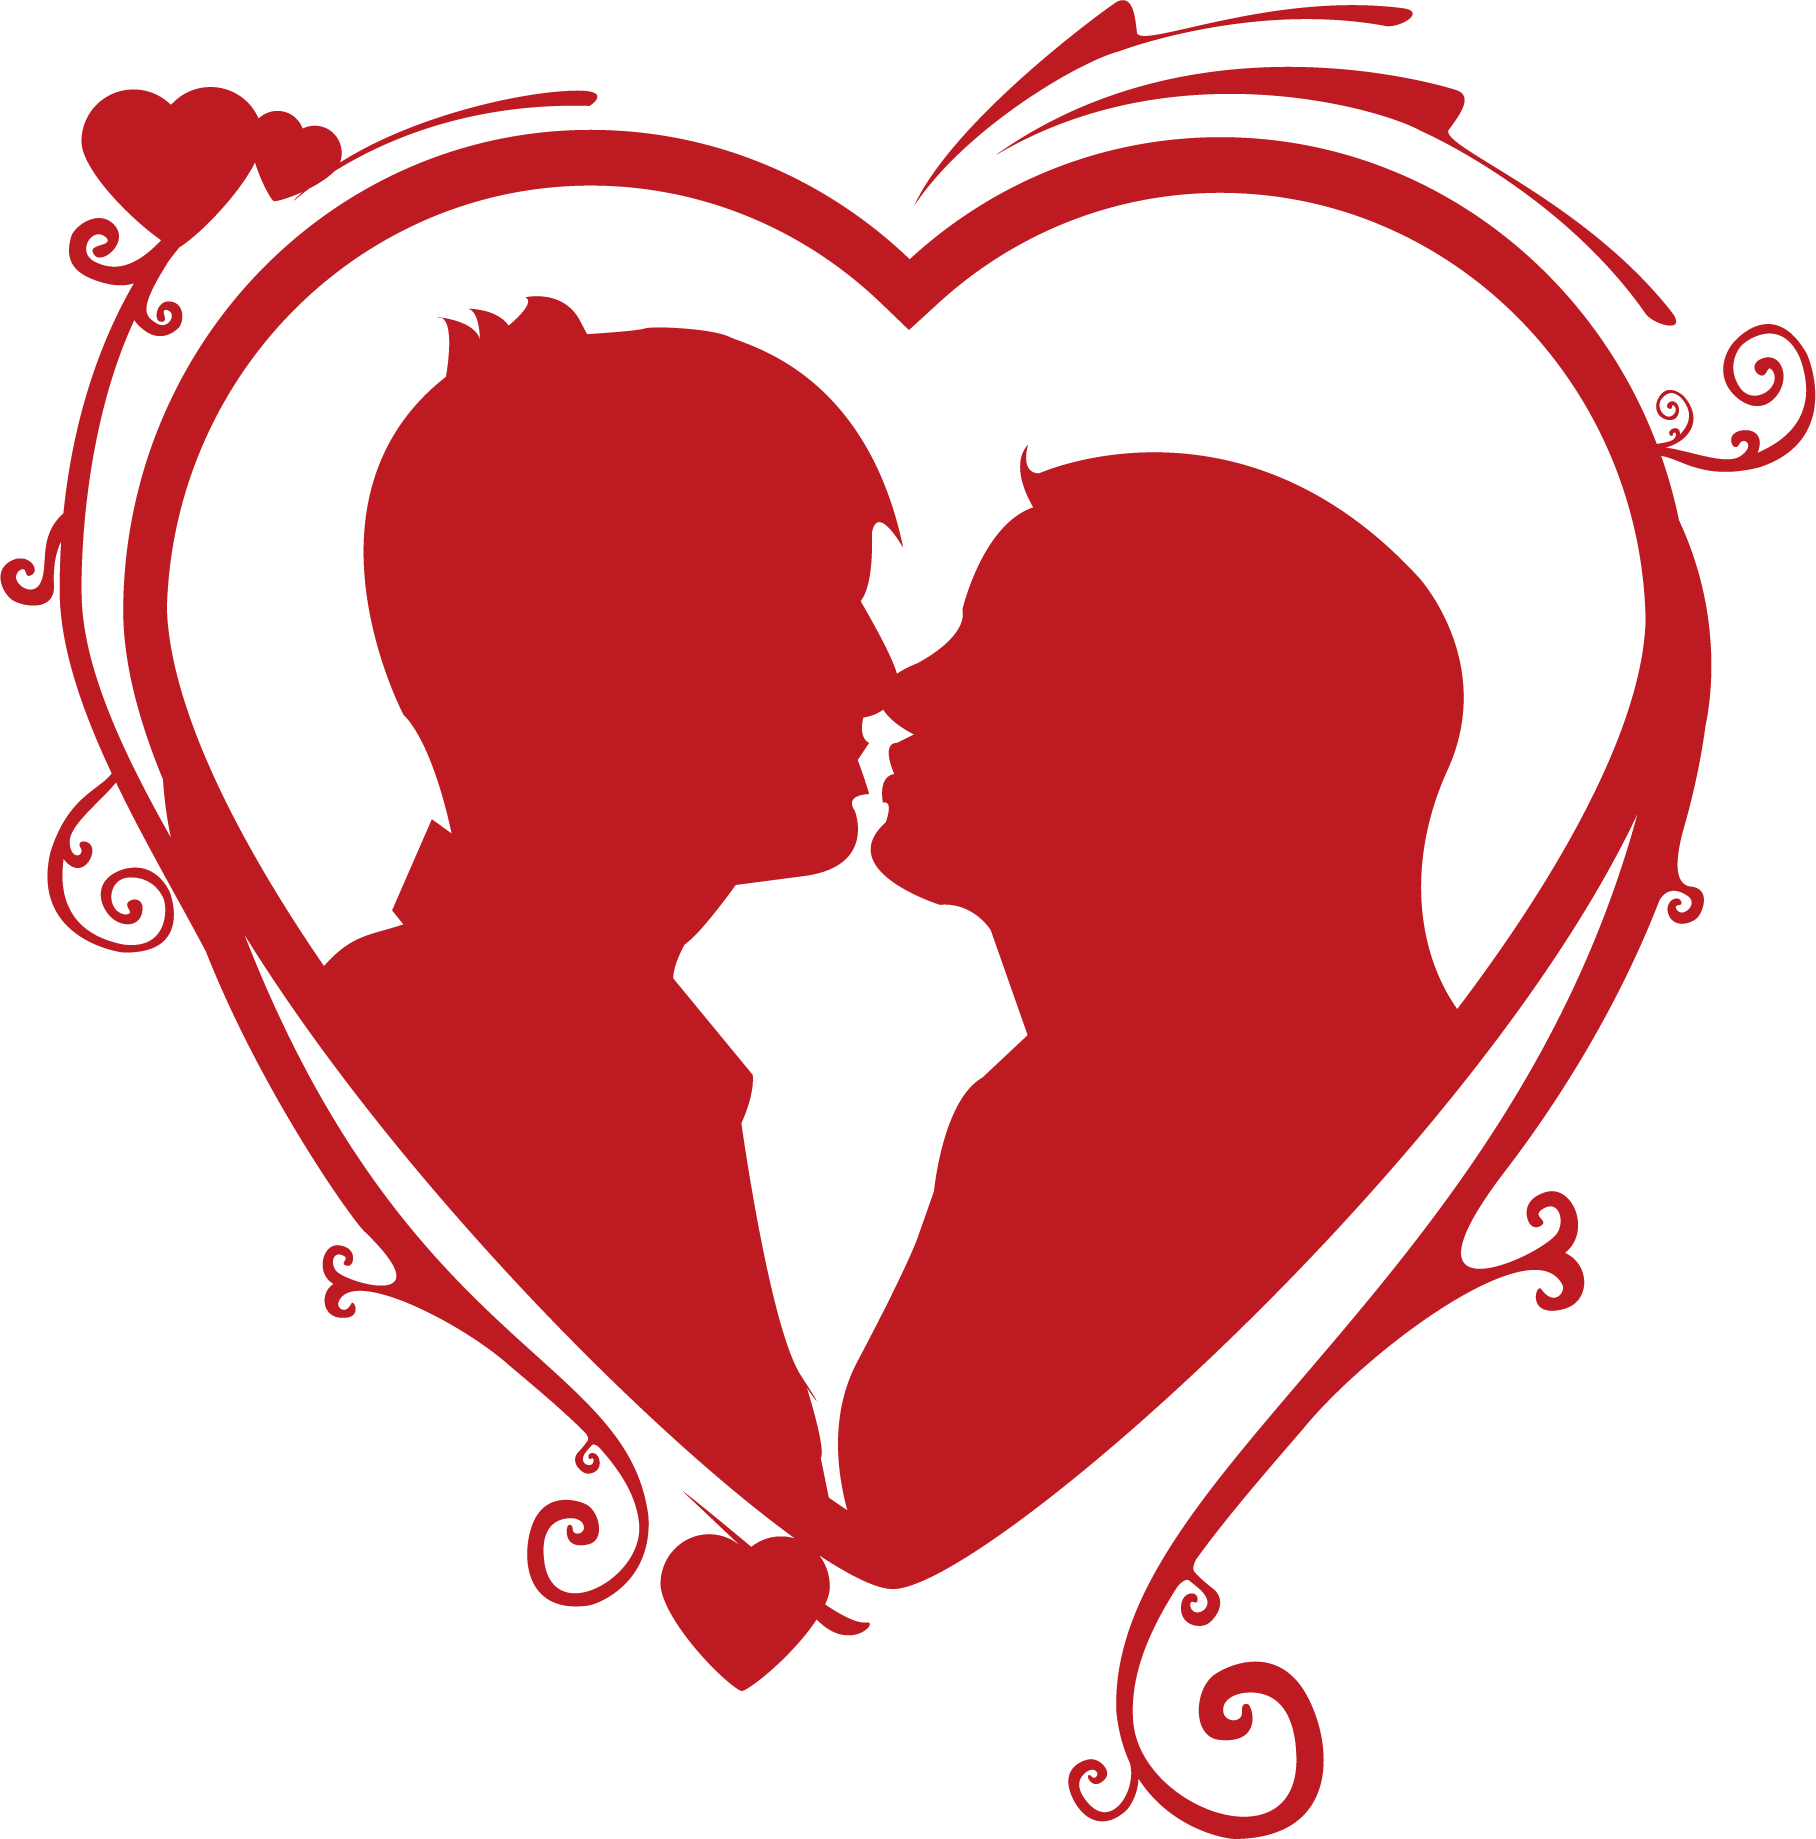 Love Vector Png 7.